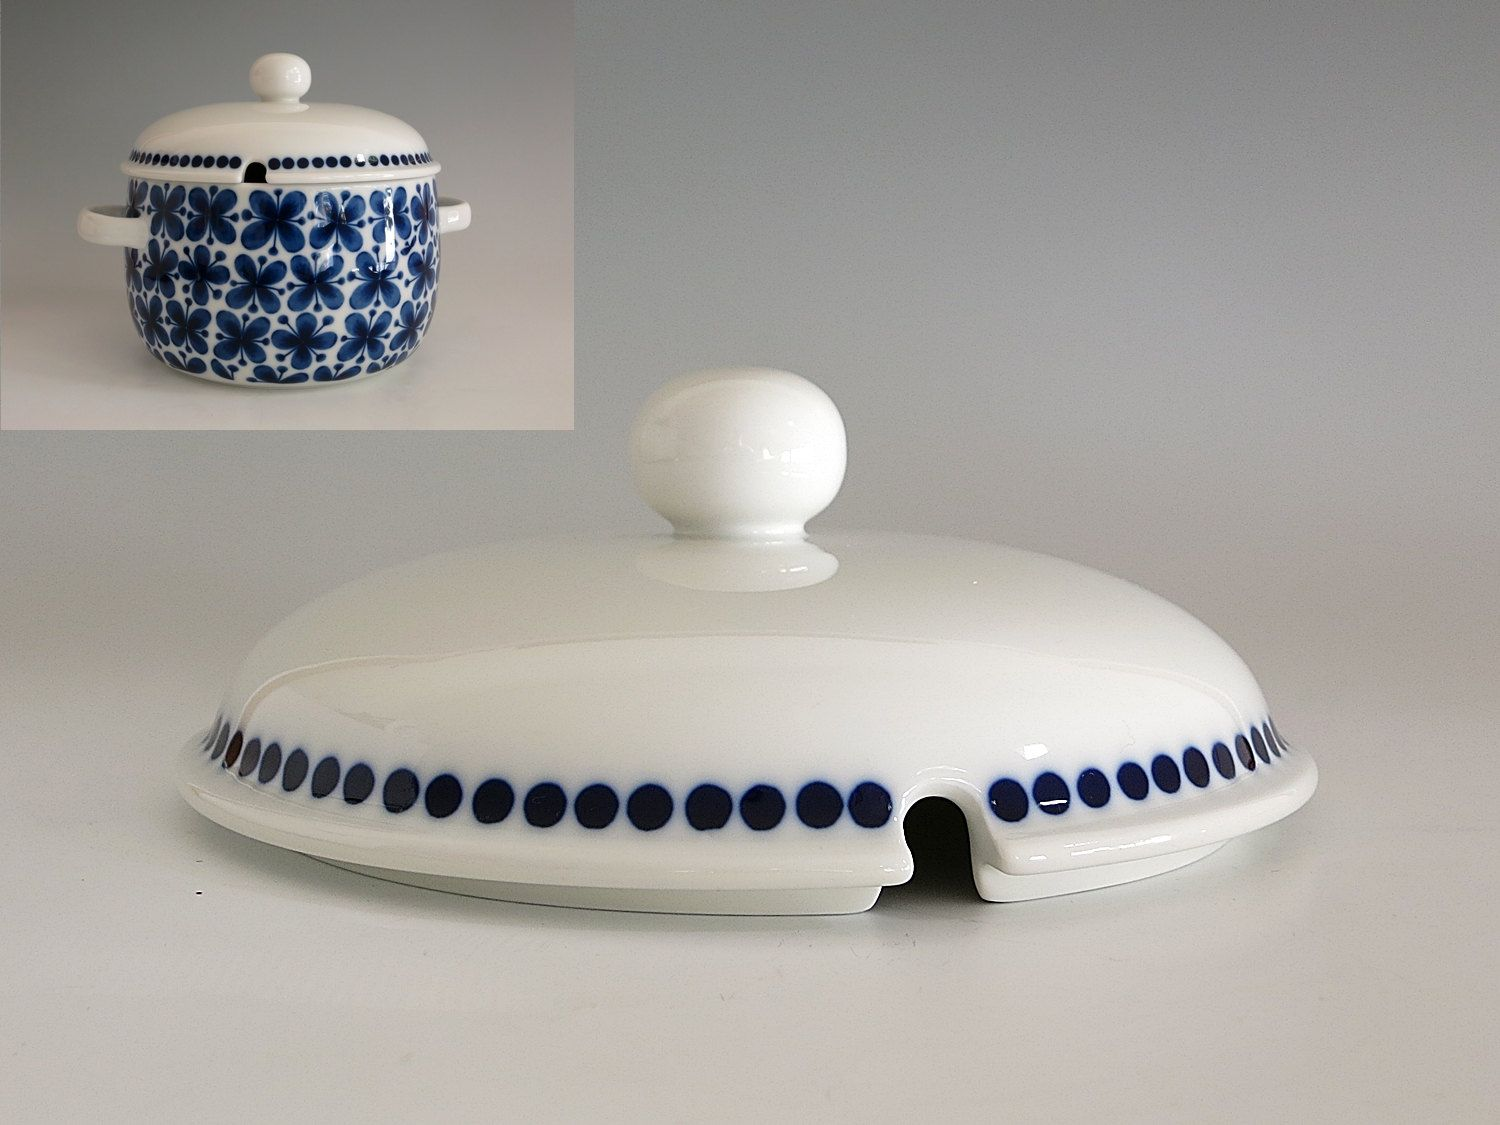 Vintage Replacement Rörstrand Sweden Mon Amie Lid for Large Casserole or Tureen - Marianne Westman Design - Replacement Lid Only by EightMileVintage on Etsy